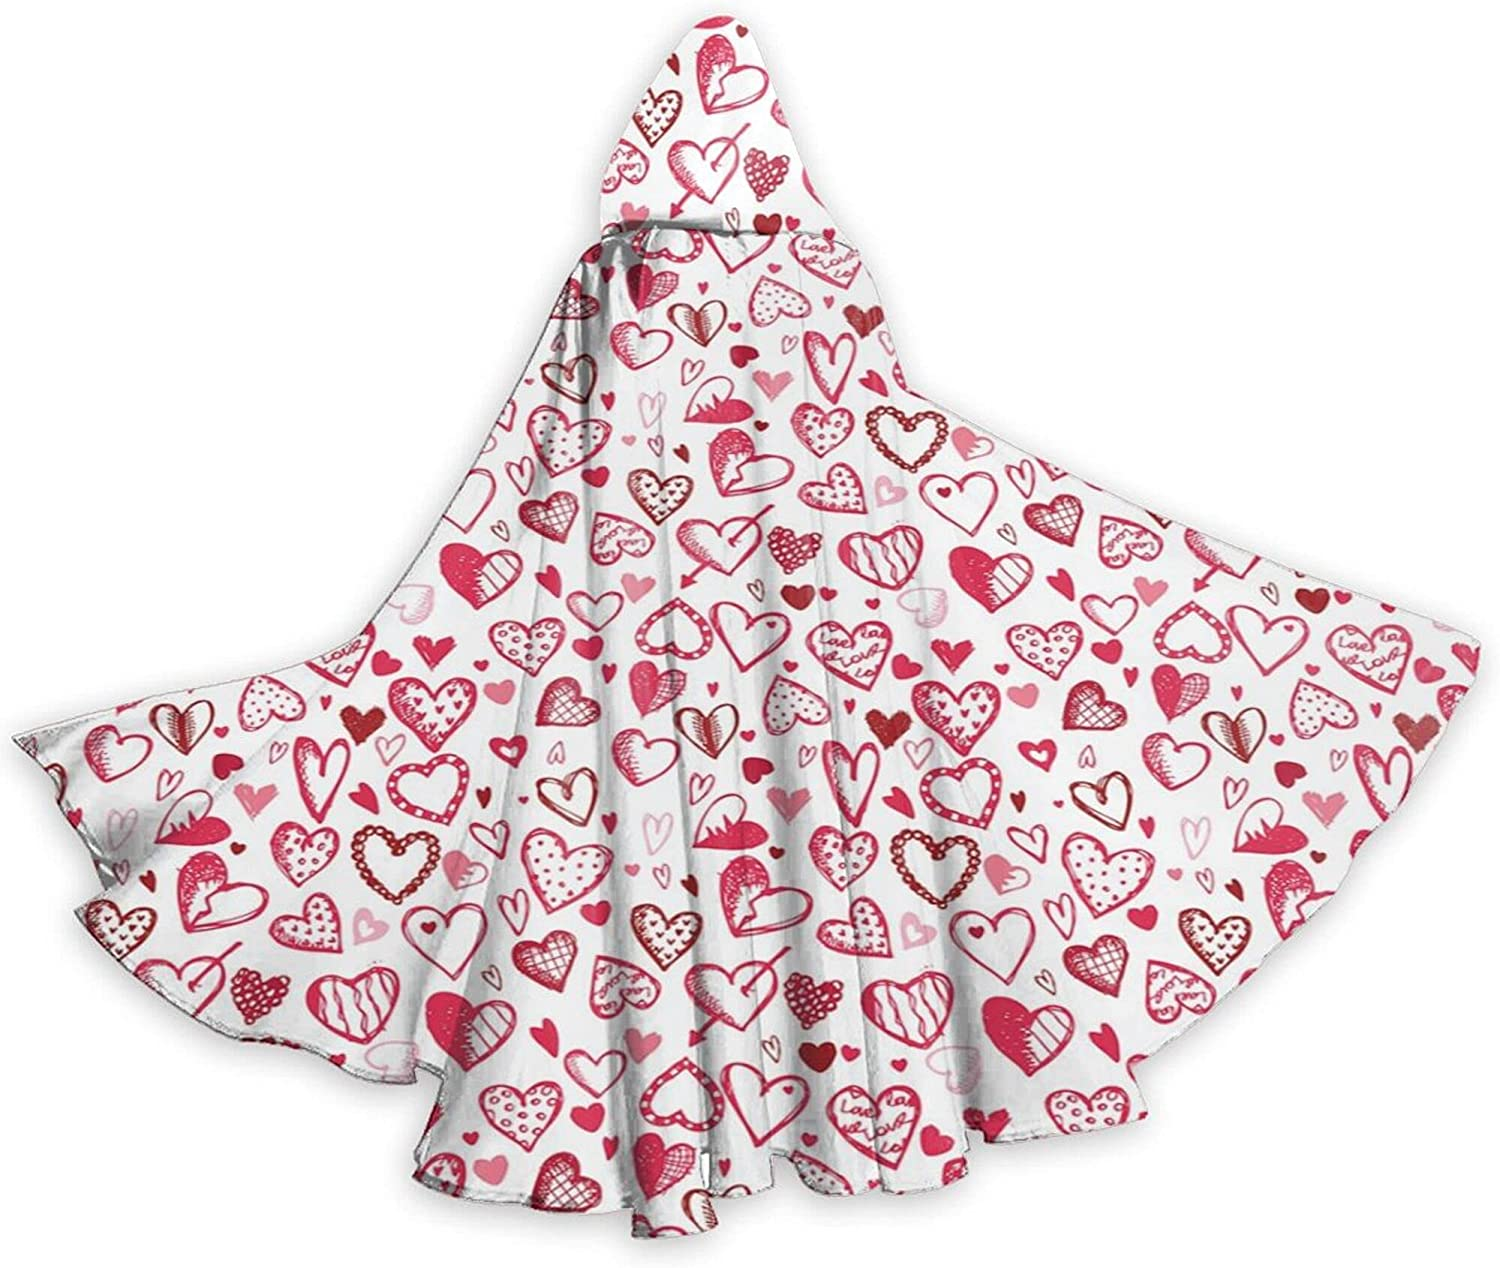 Cloak Doodle Style Sketch Hearts With Polka Dots Very popular Insc Lines Our shop most popular Love